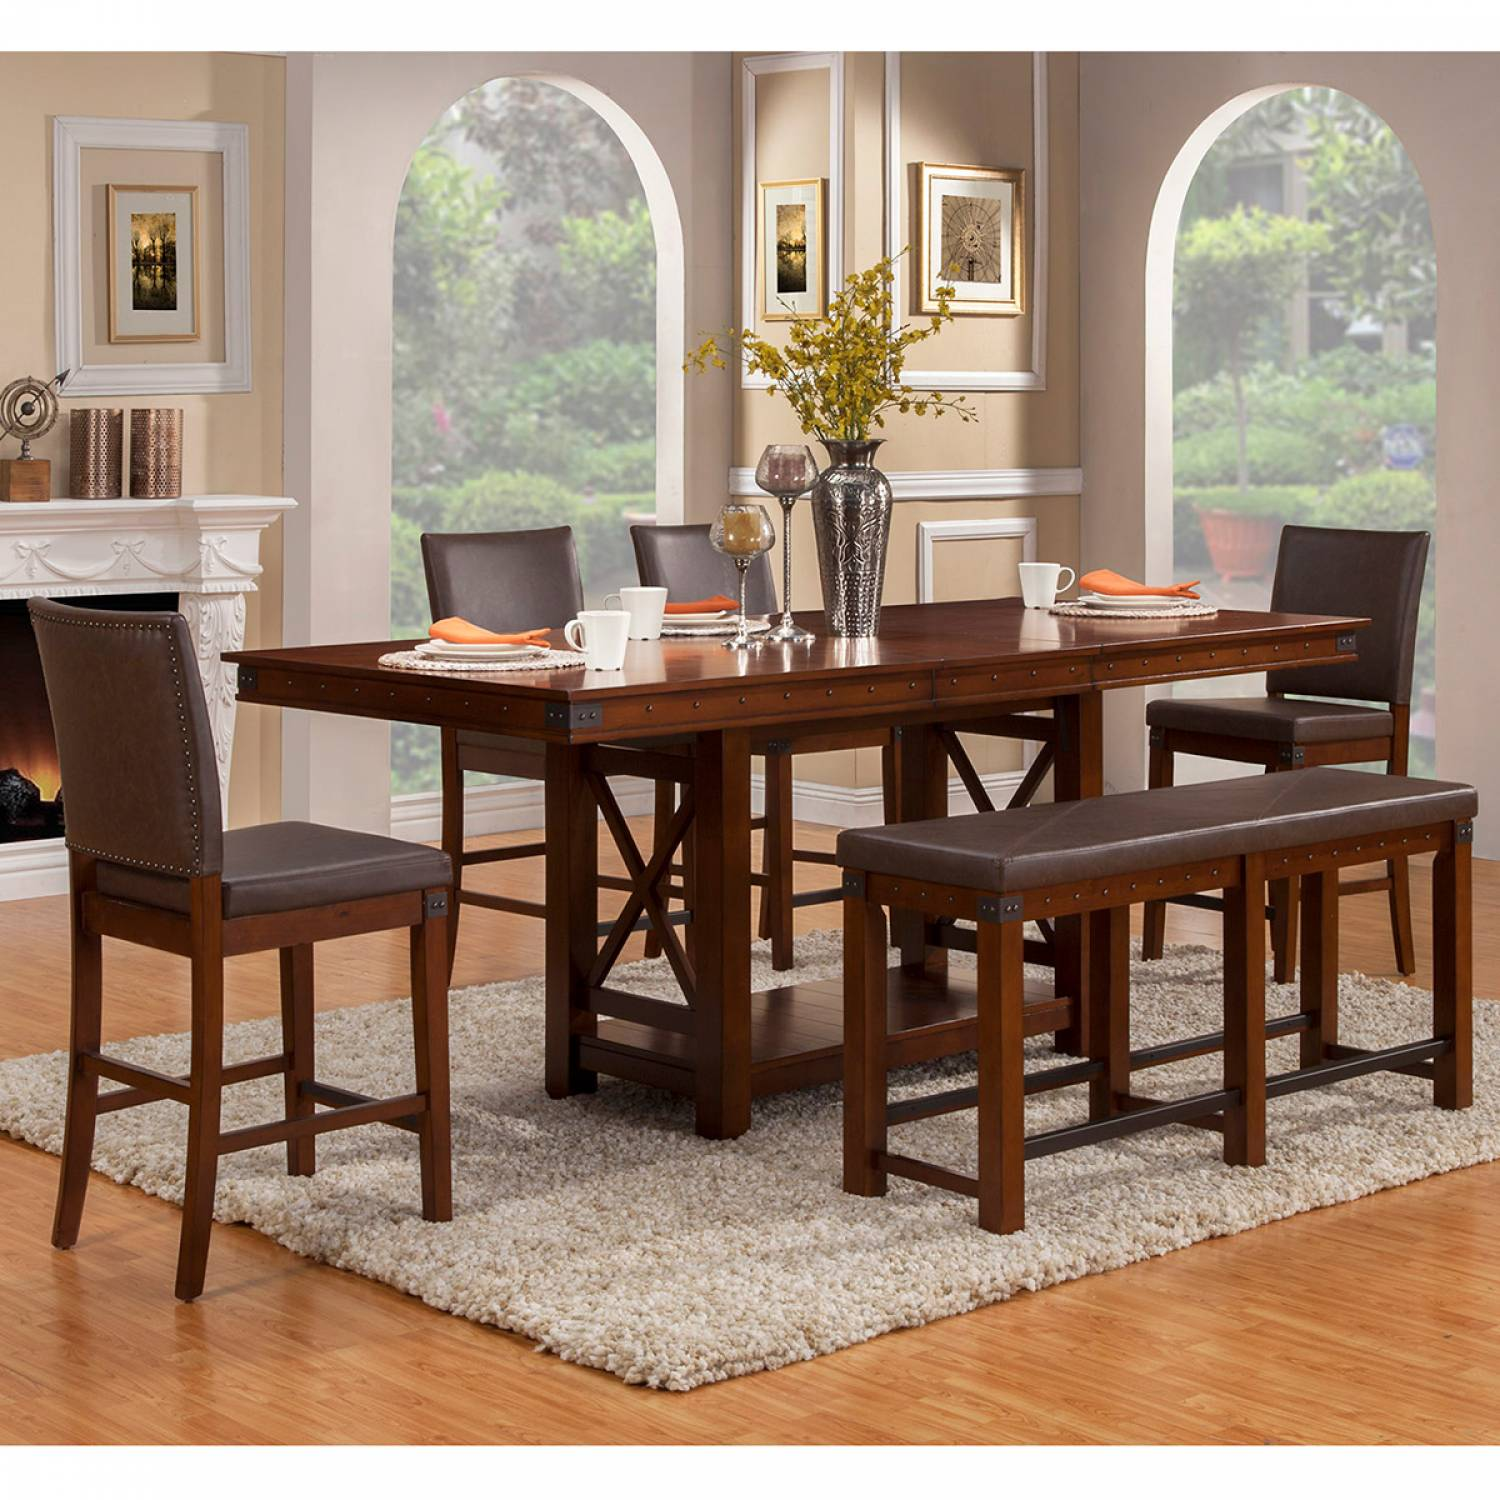 Awesome 2727 Alpine Furniture 2727 01 Artisan 6Pc Sets Dining Table 4 Chairs Bench Short Links Chair Design For Home Short Linksinfo